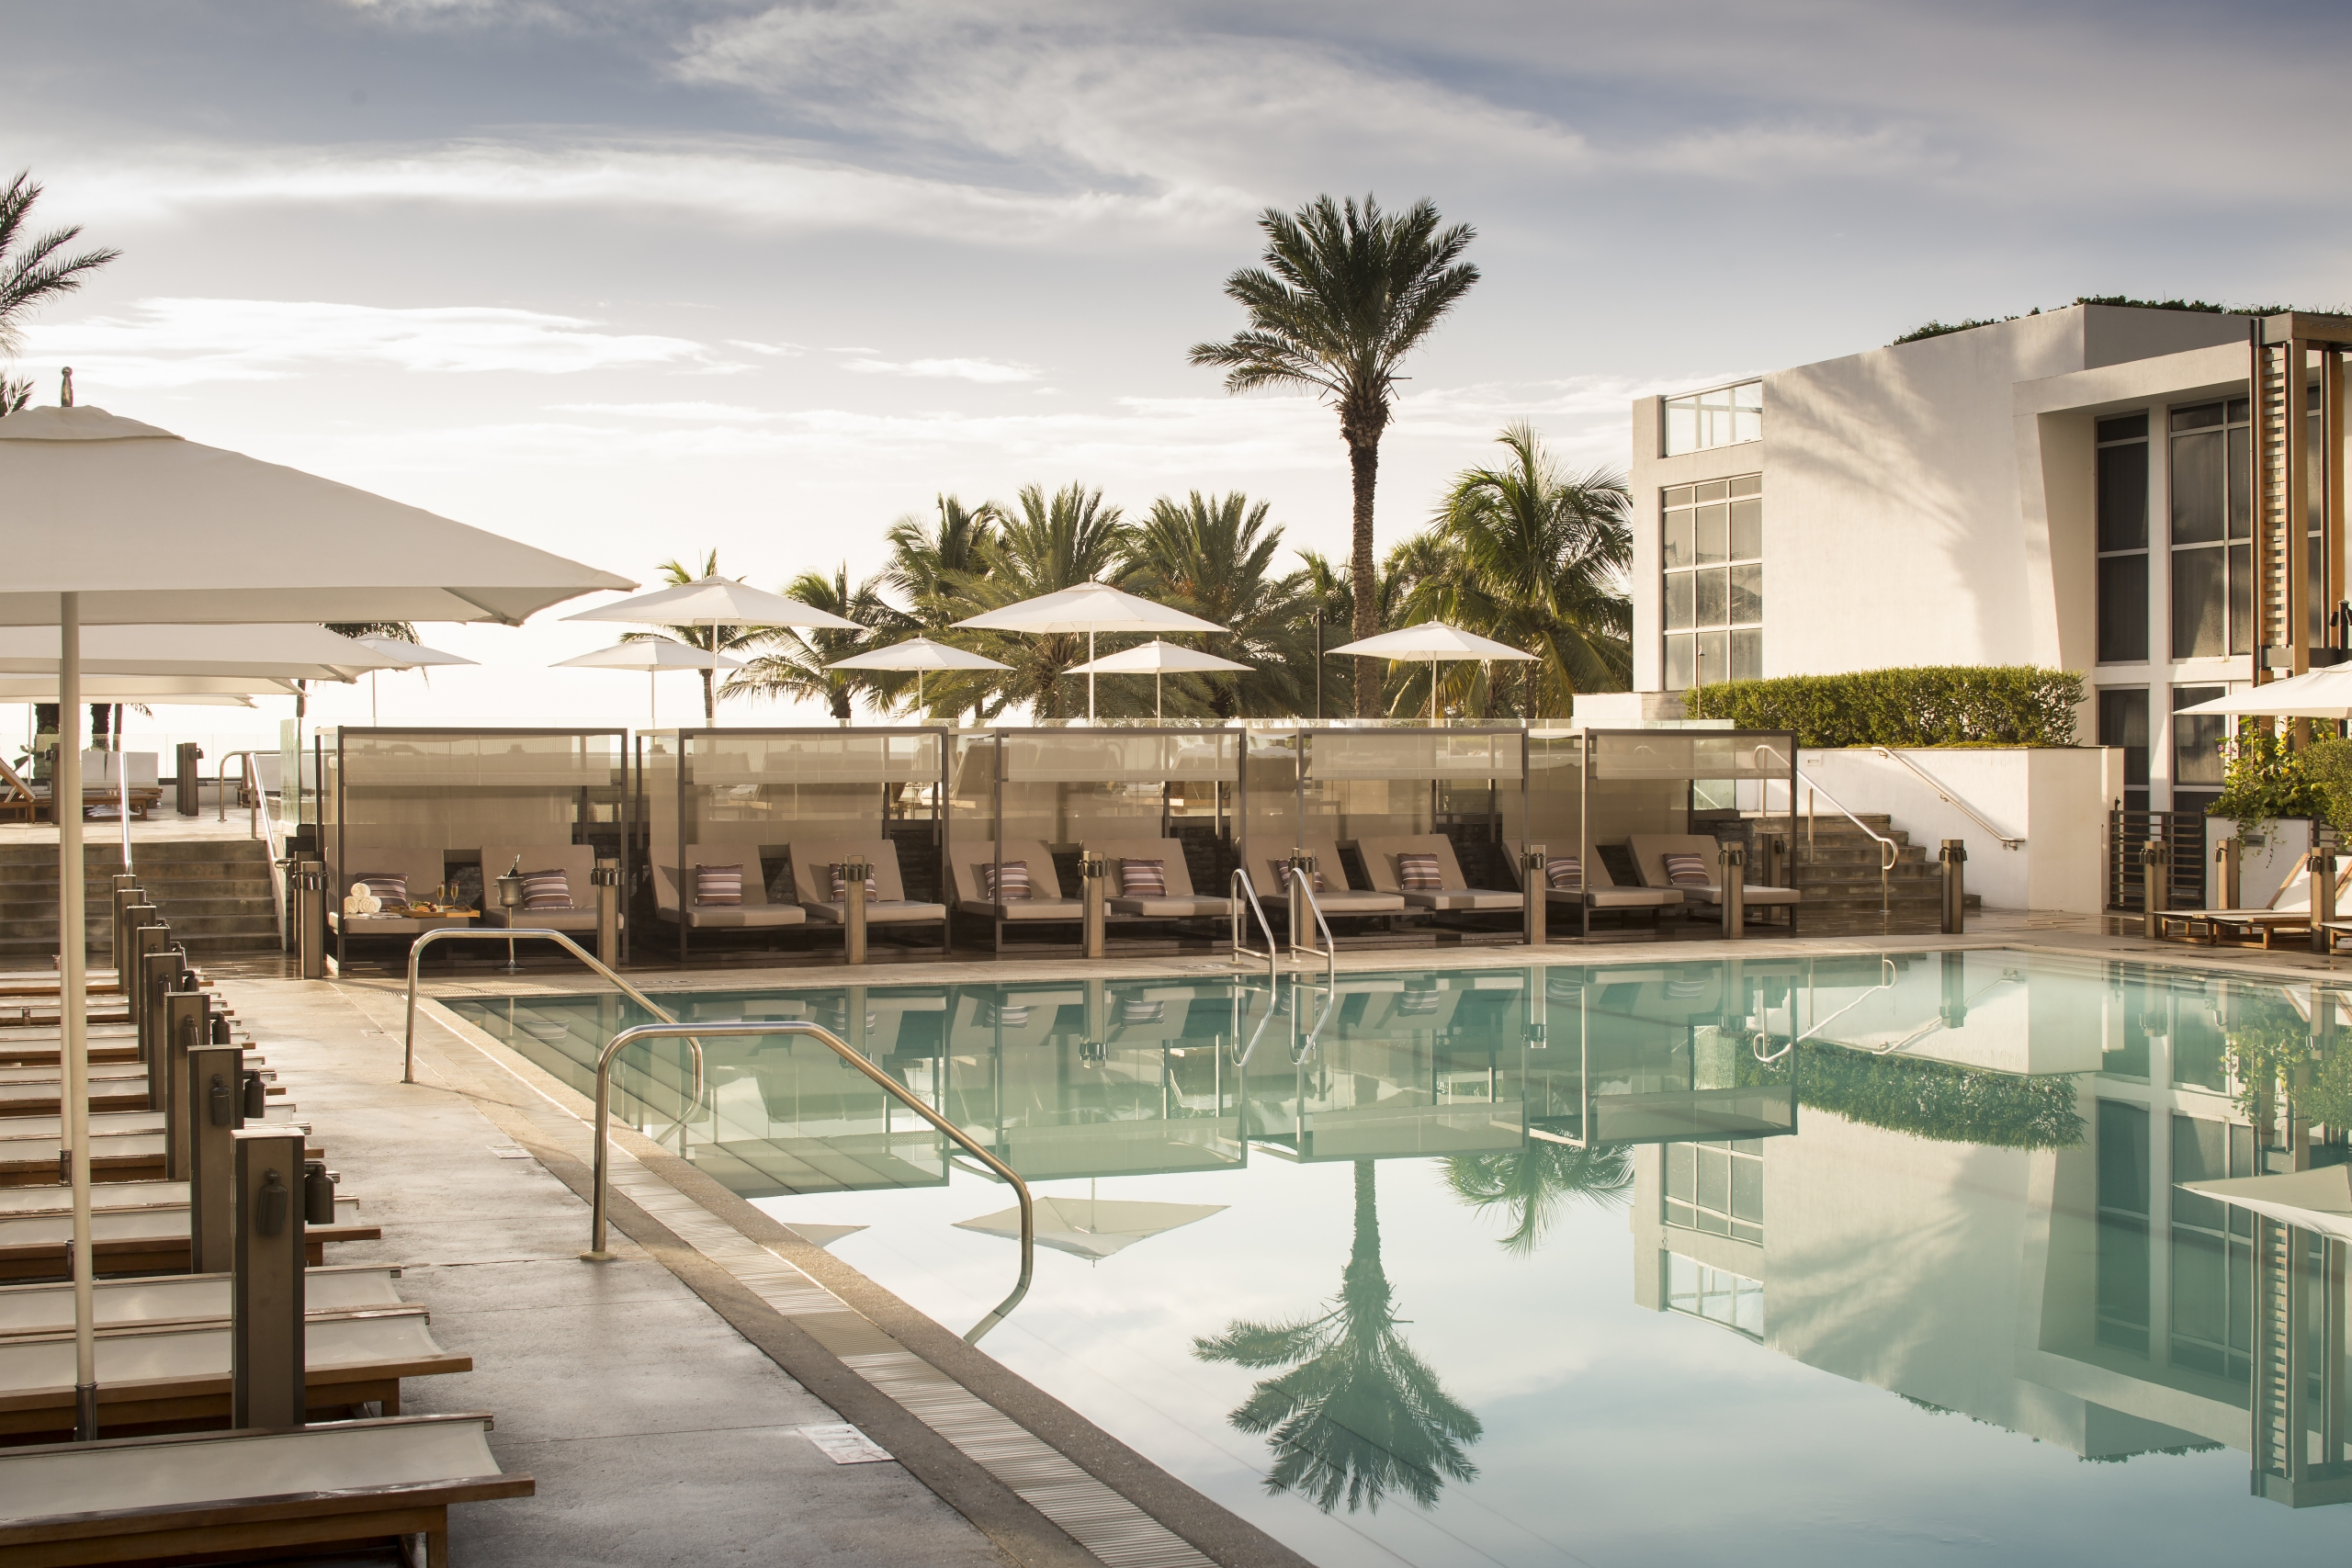 Swimming pool and sun loungers at Eden Roc